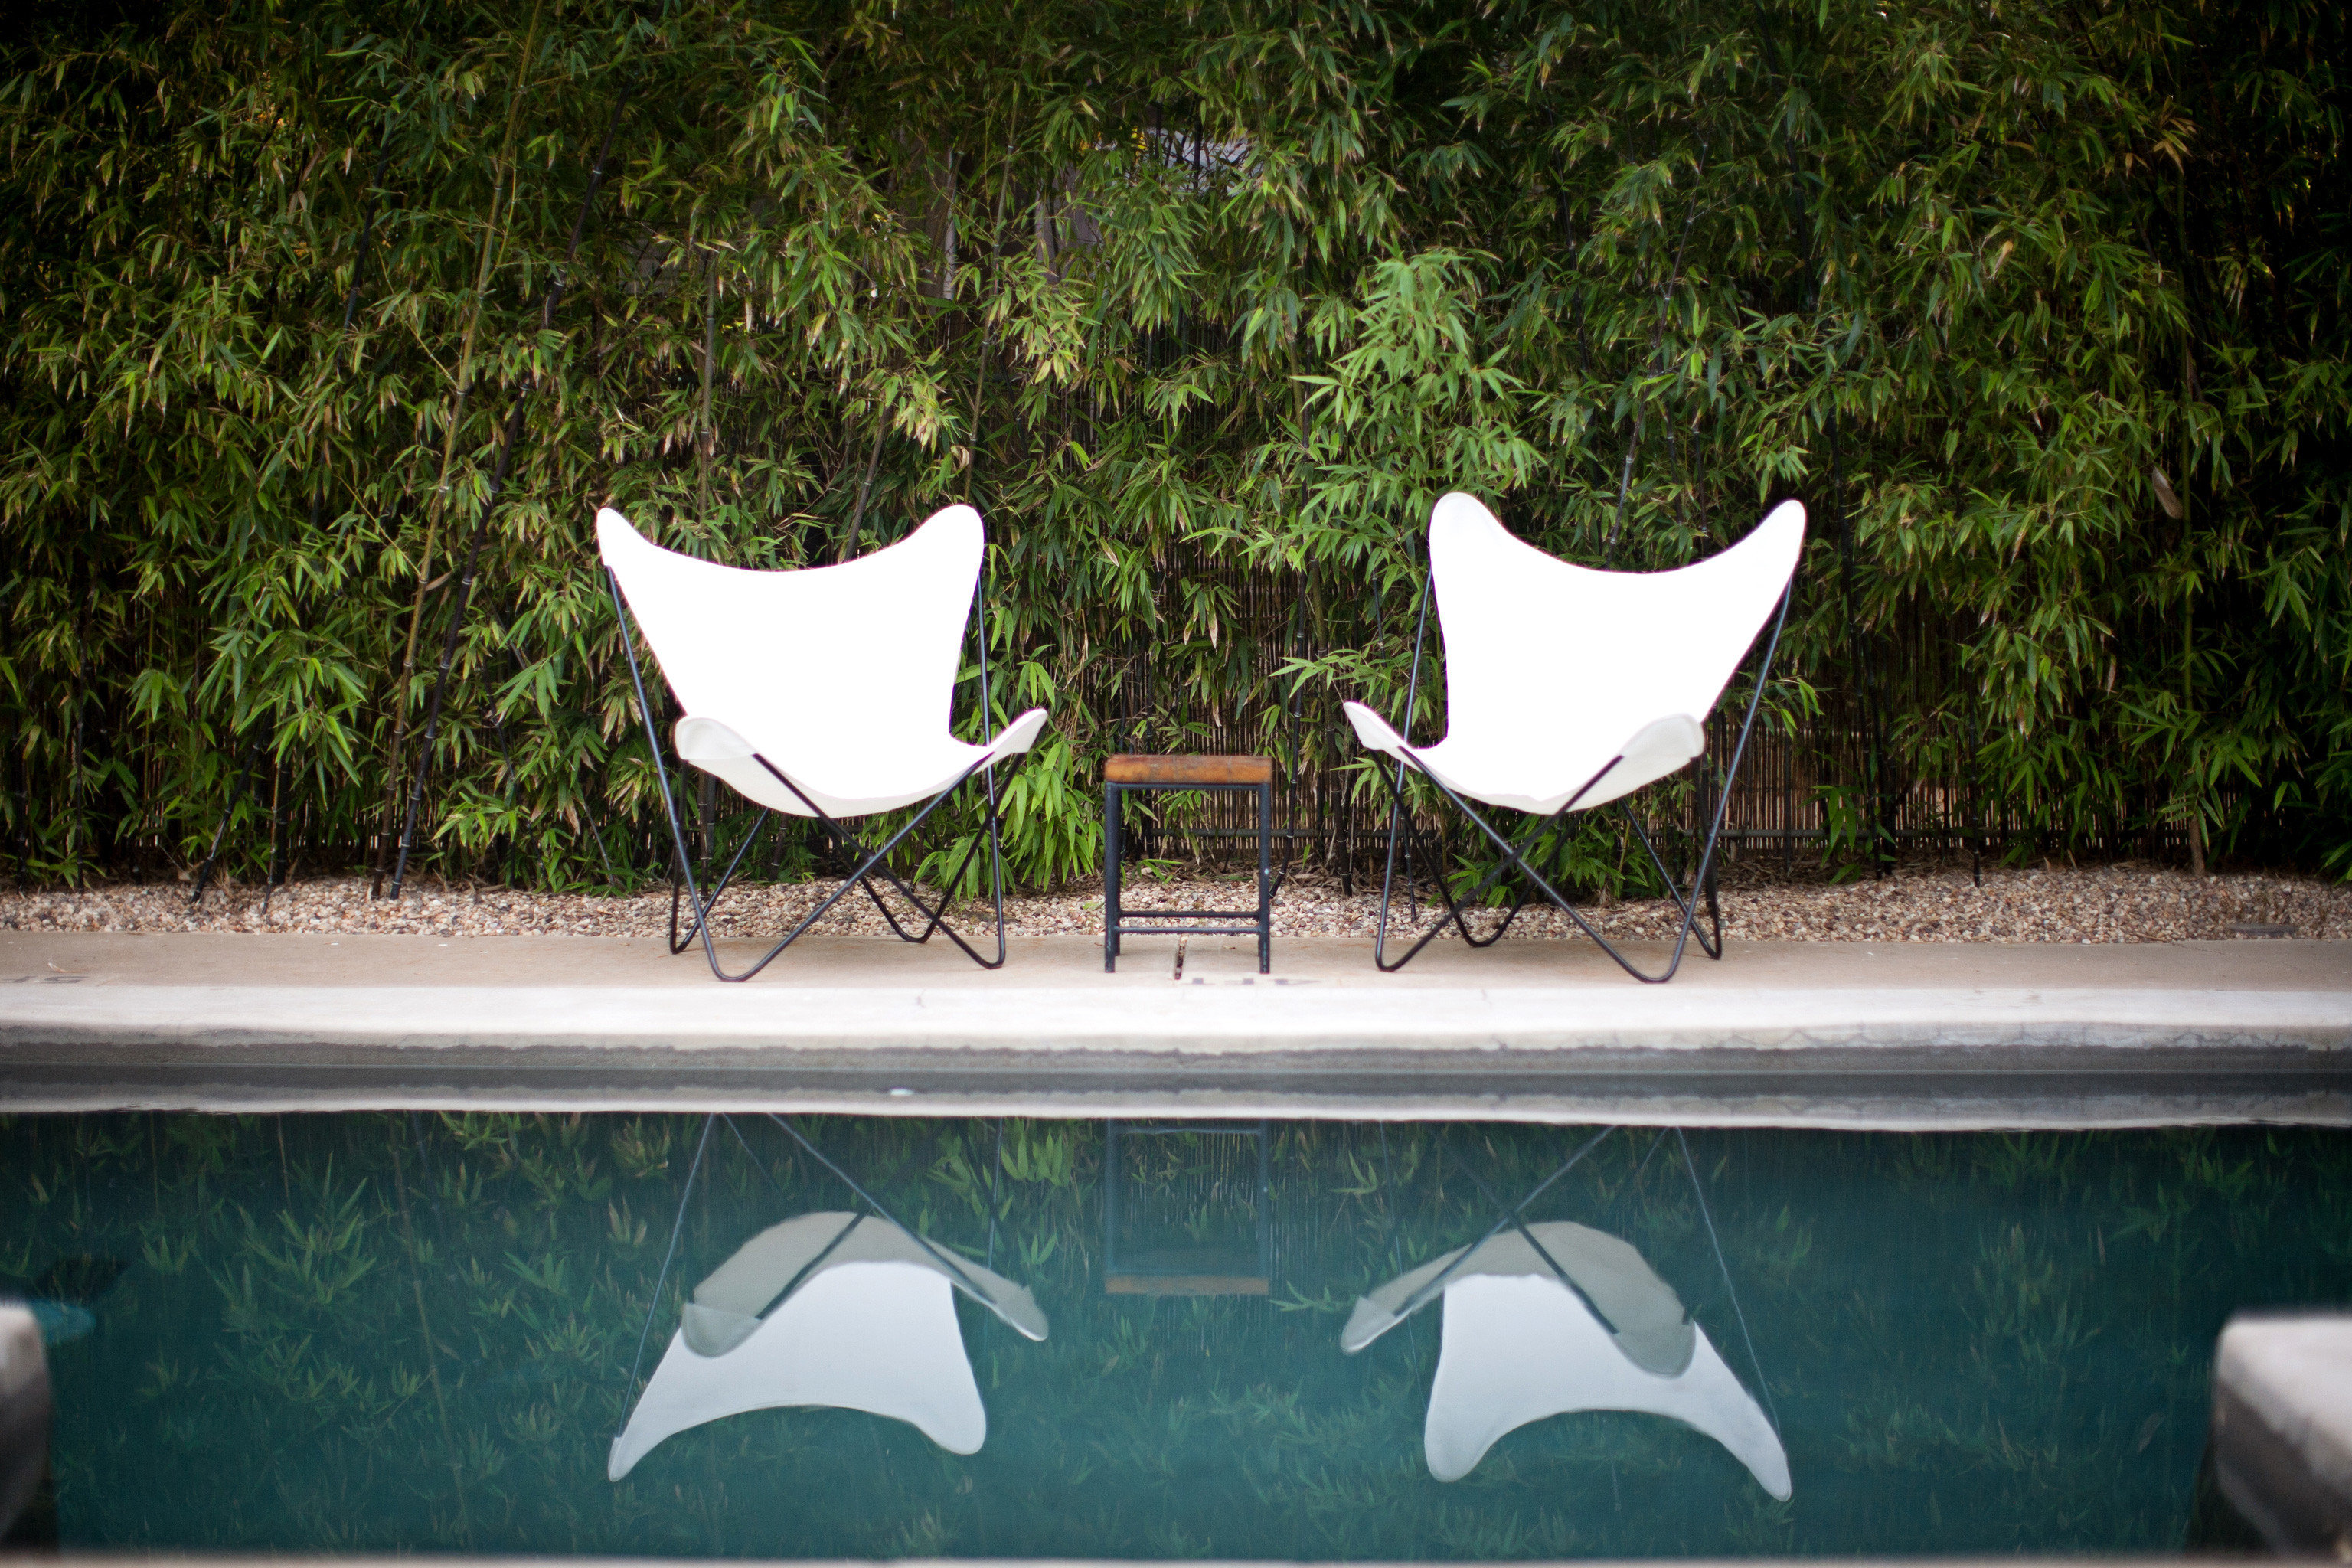 Grounds Hip Hotels Lounge Outdoors Pool tree green leaf art